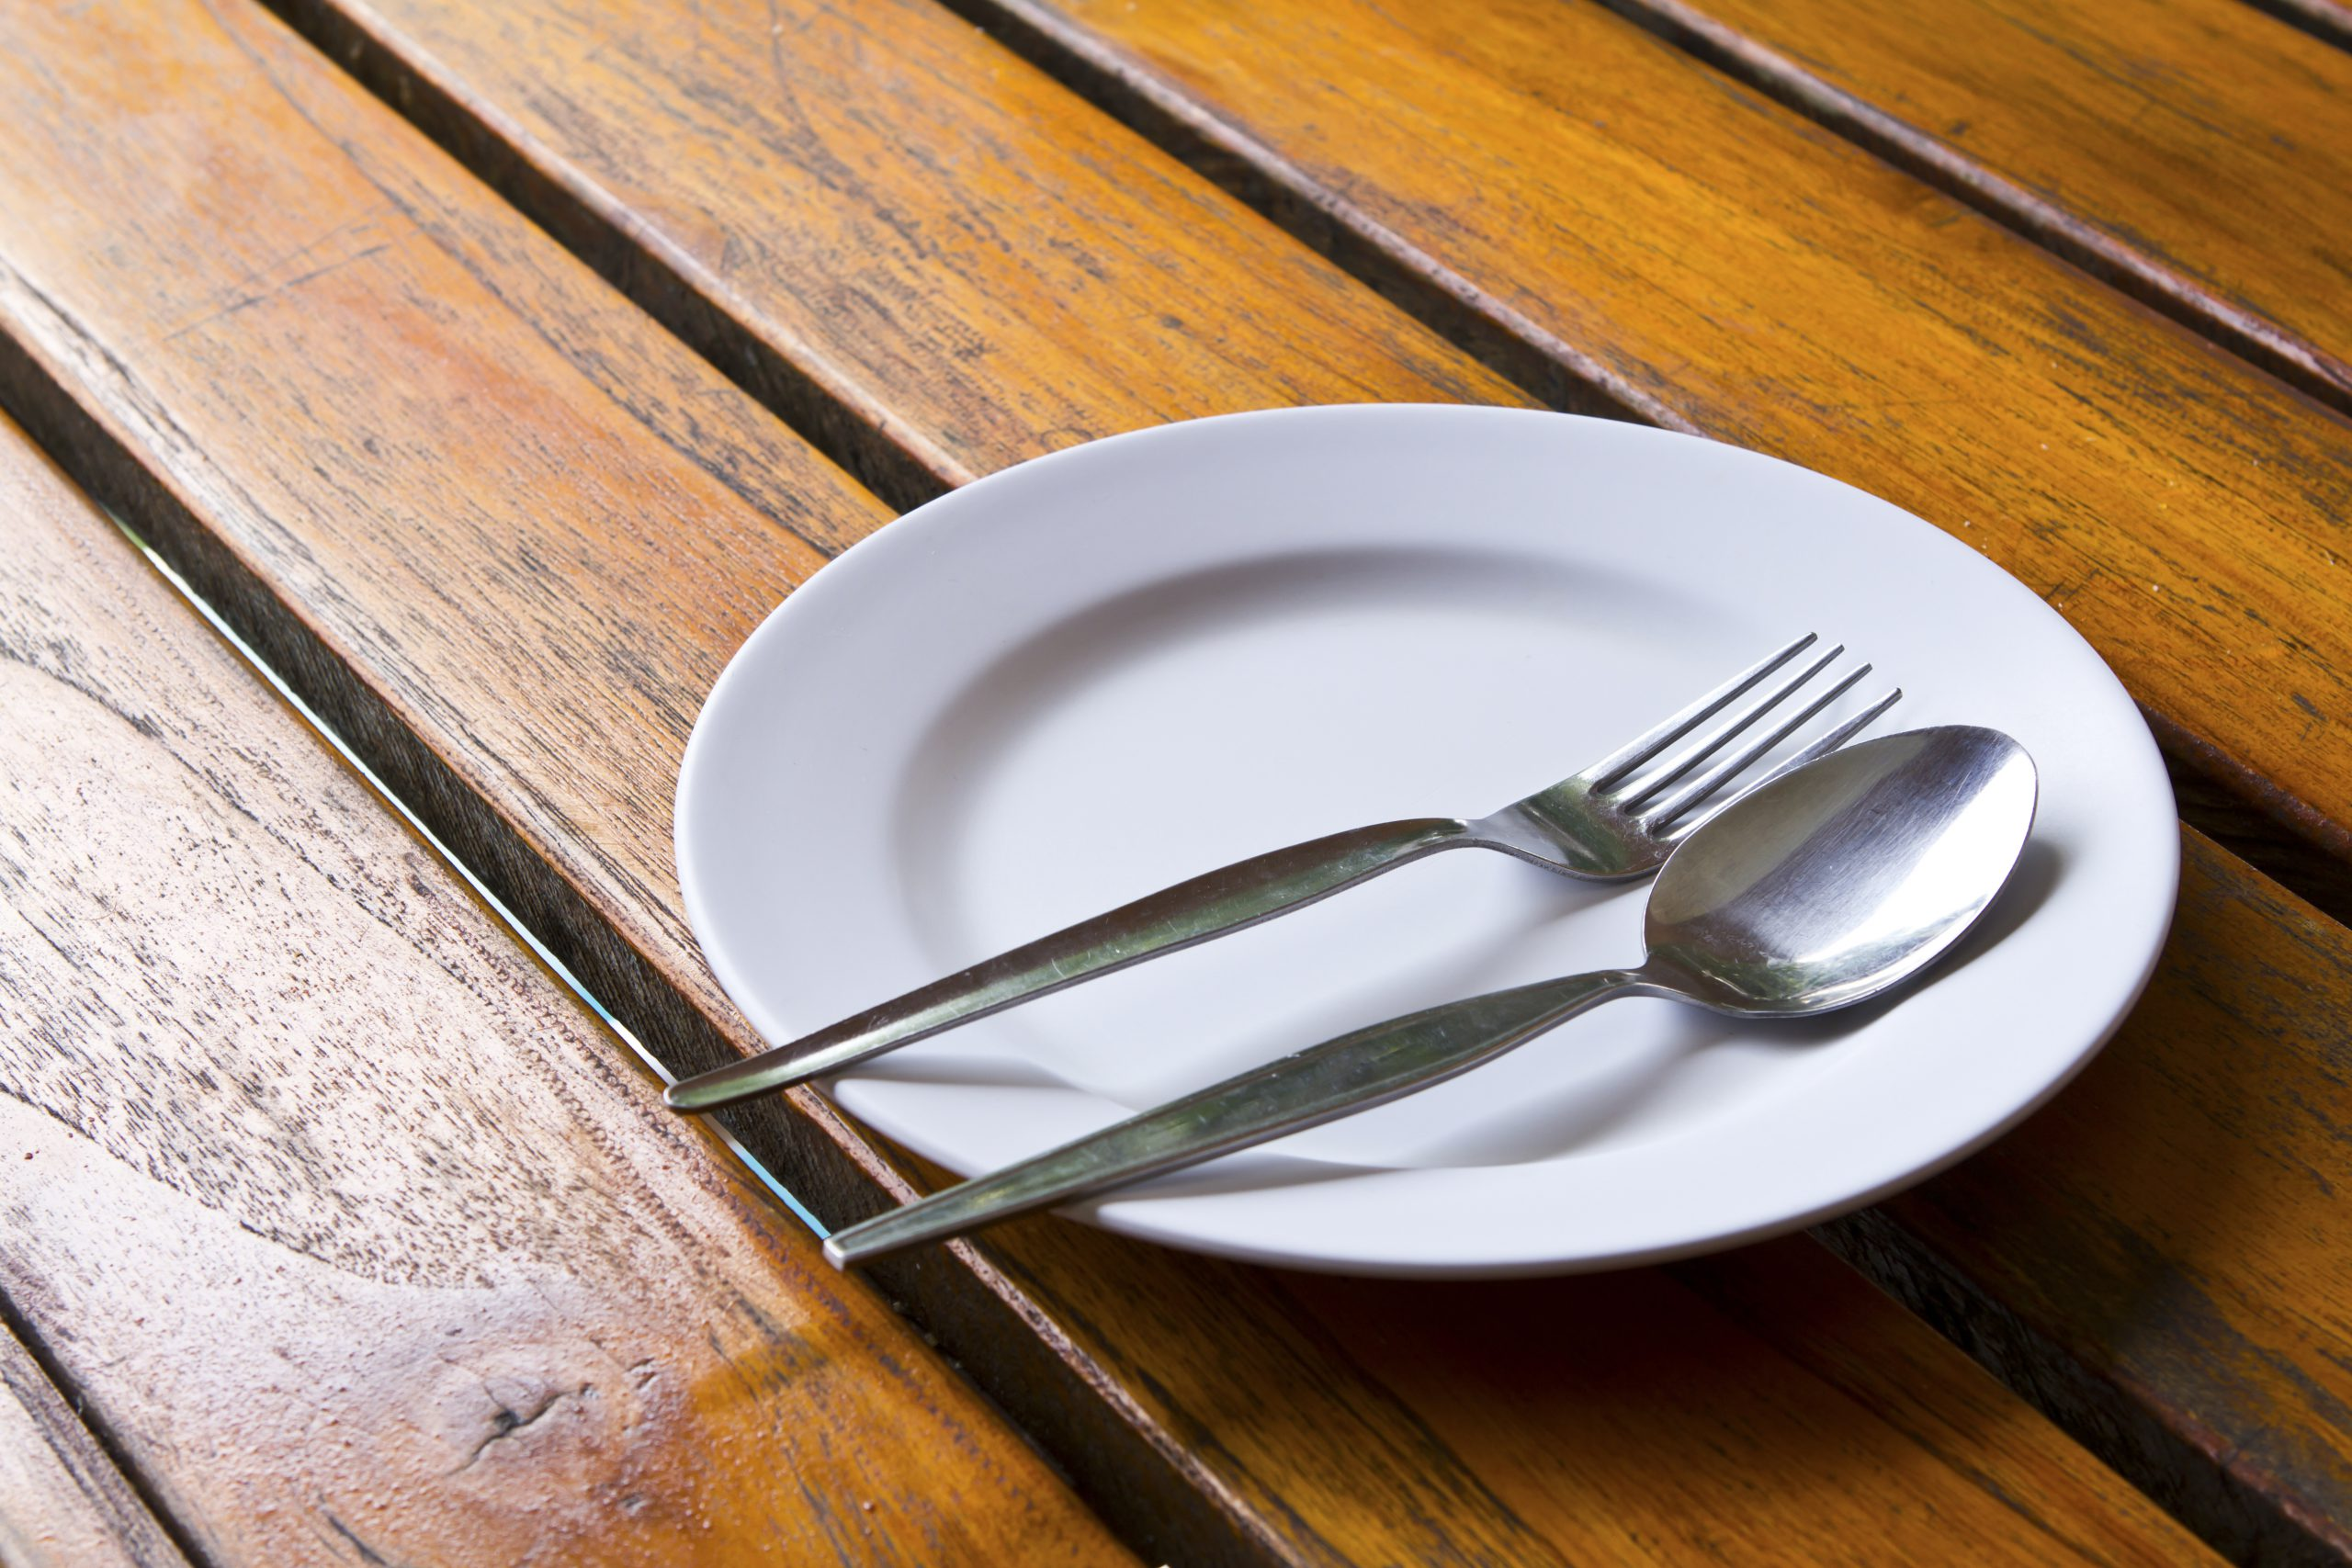 Empty plate with fork and spoon due to loss of appetite from kidney disease